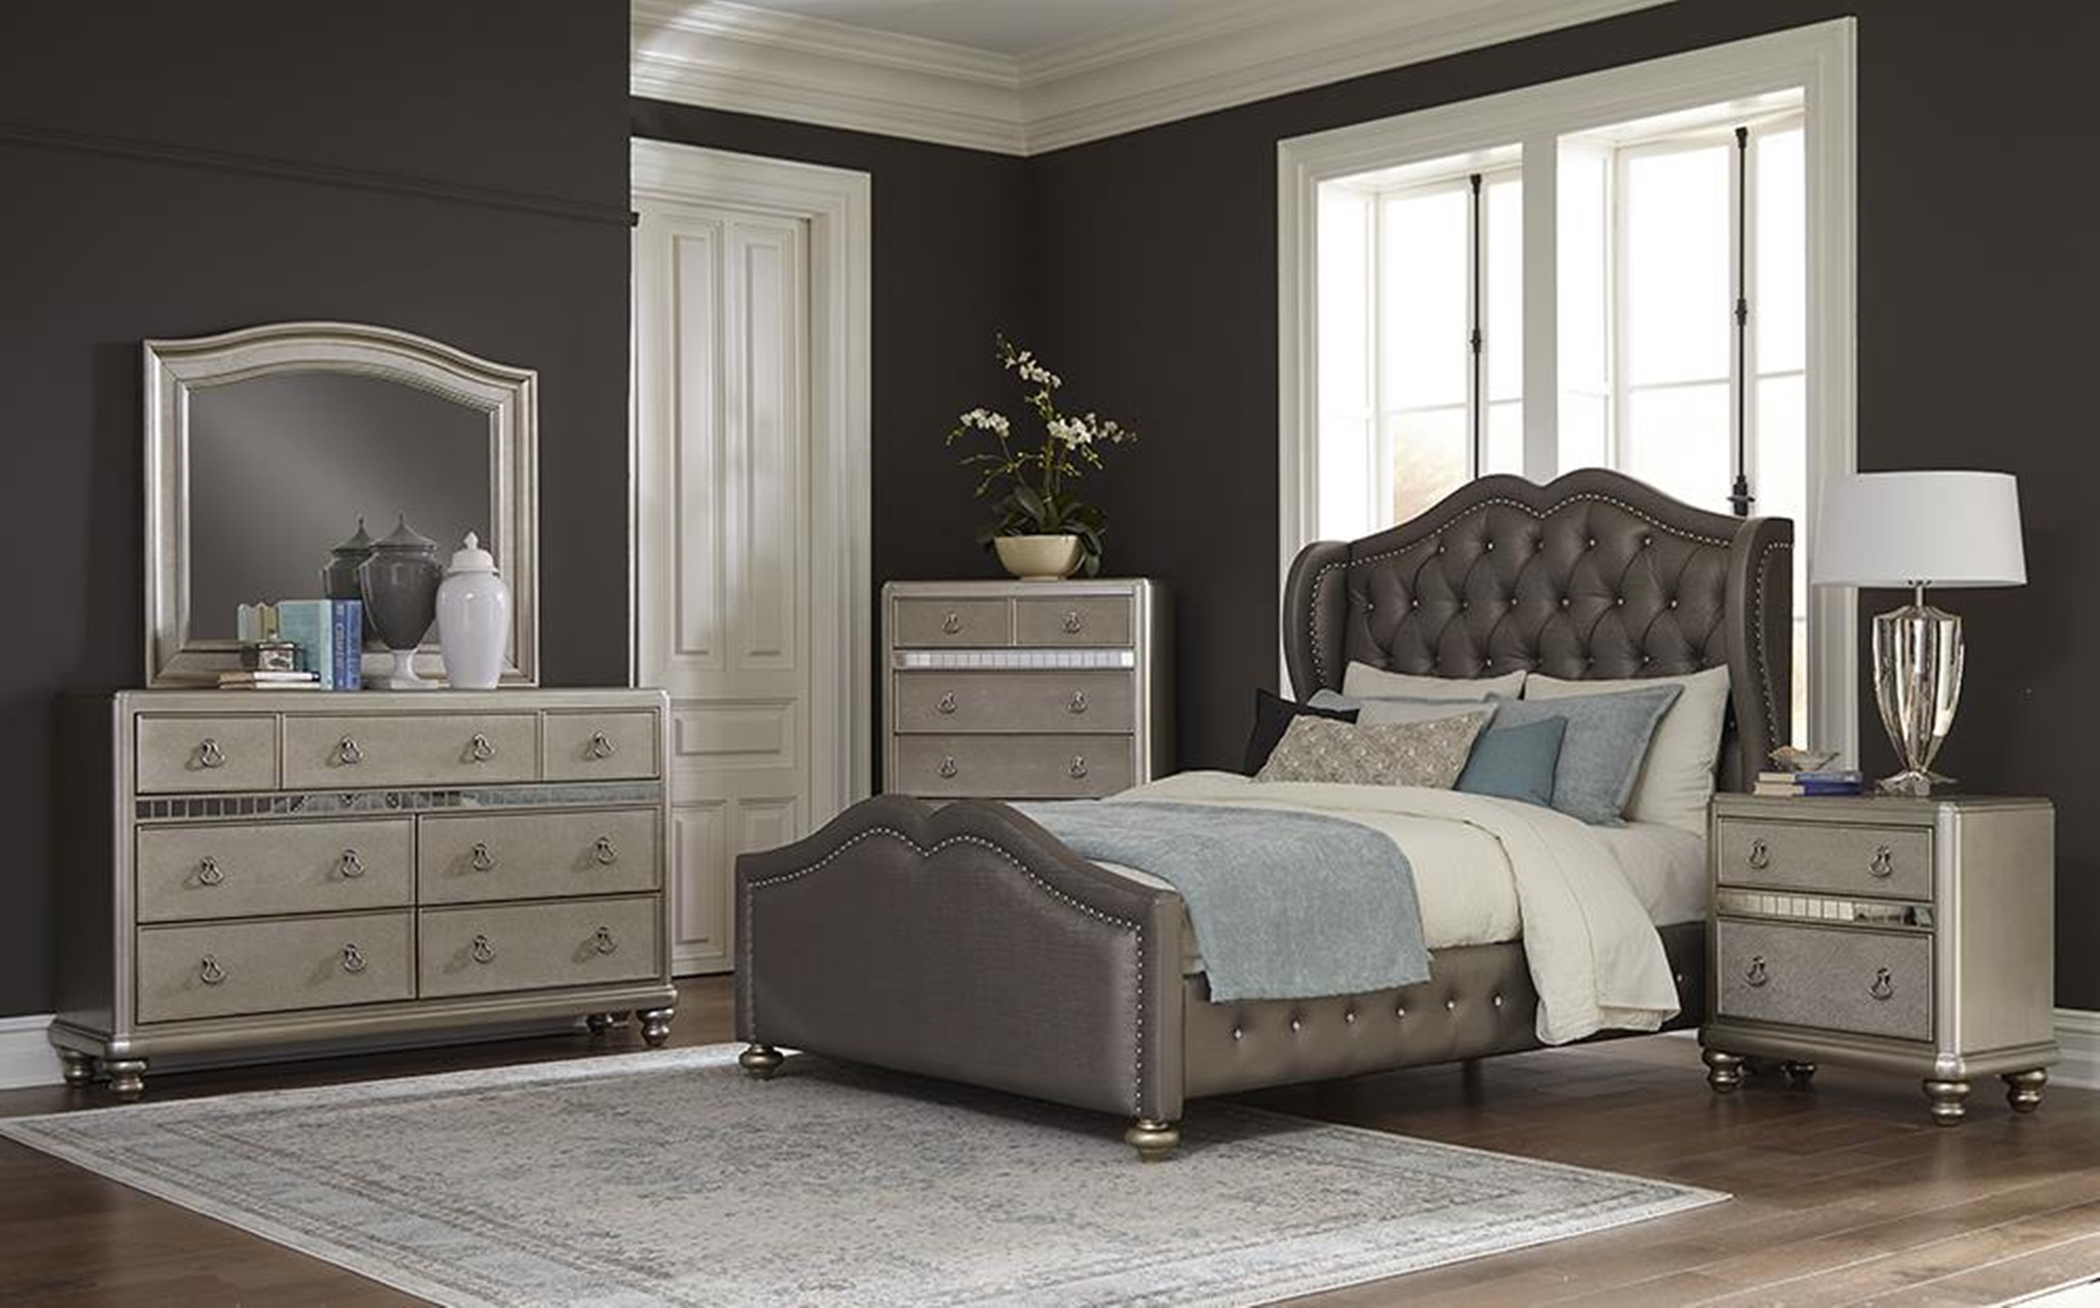 Belmont 4pc Queen Bed Set